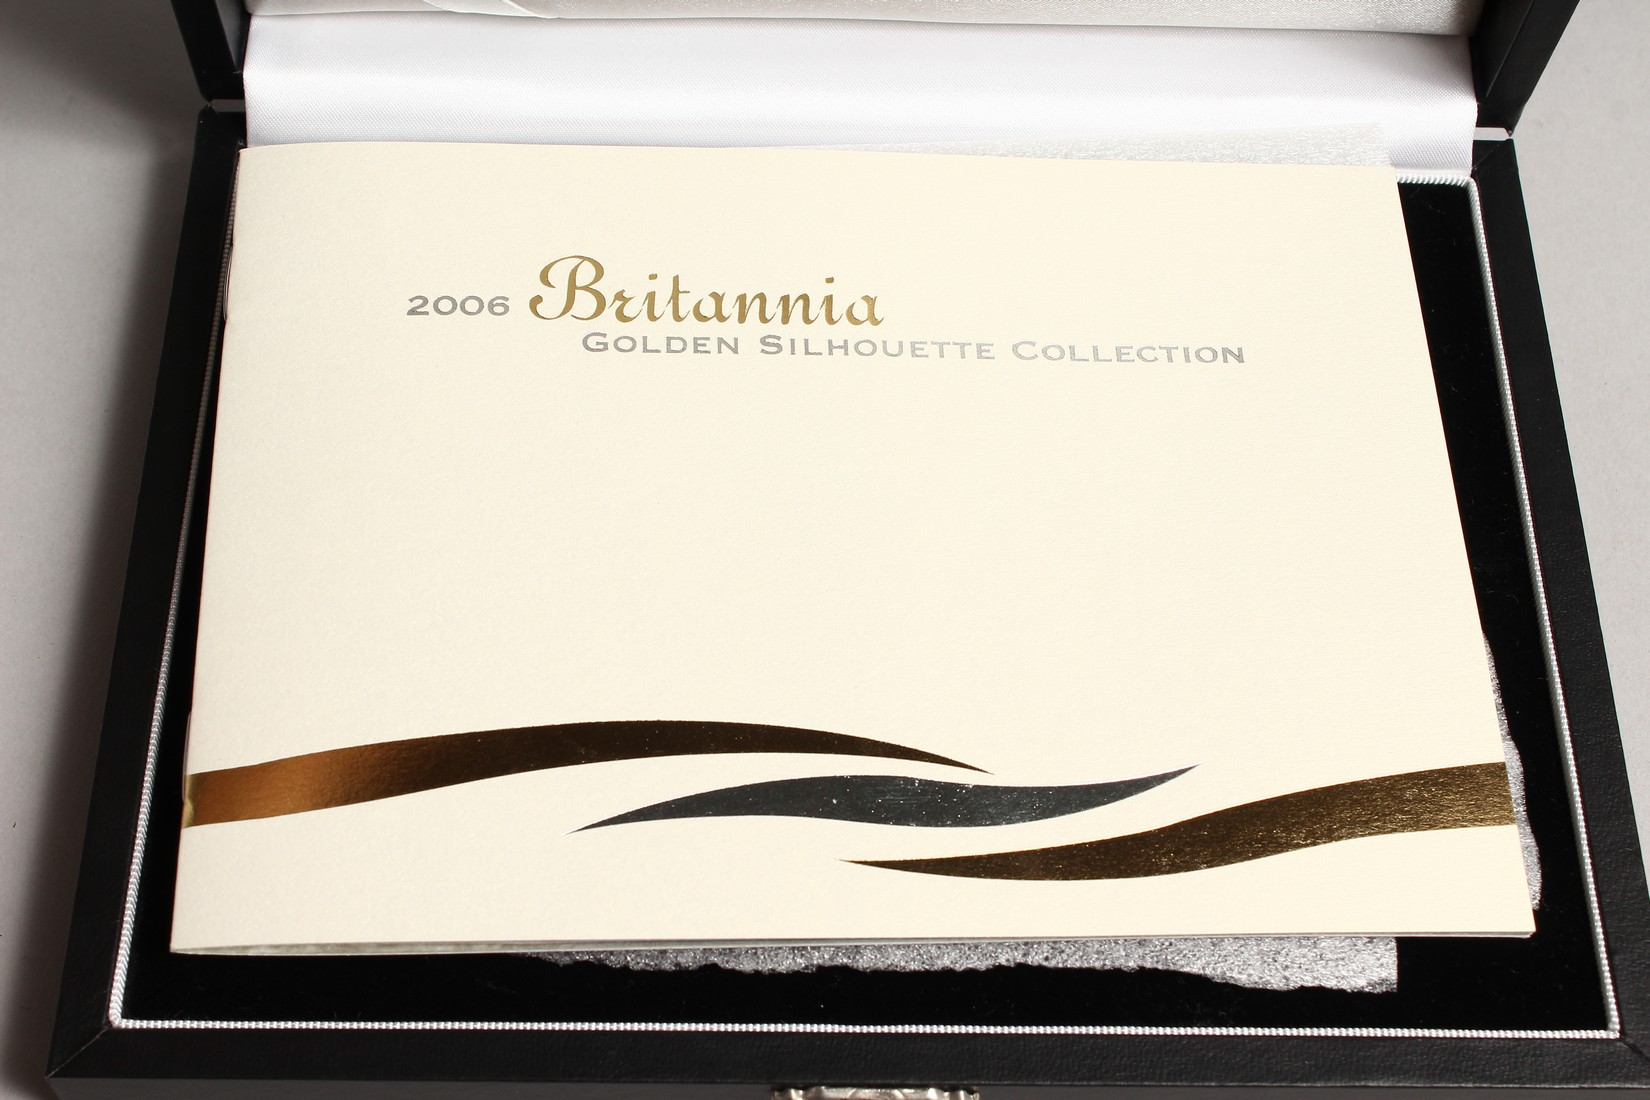 THE 2006 BRITAINNIA SILHOUETTE COLLECTION, silver and gold proof set, no. 0191 of 3000 issued with - Image 2 of 3